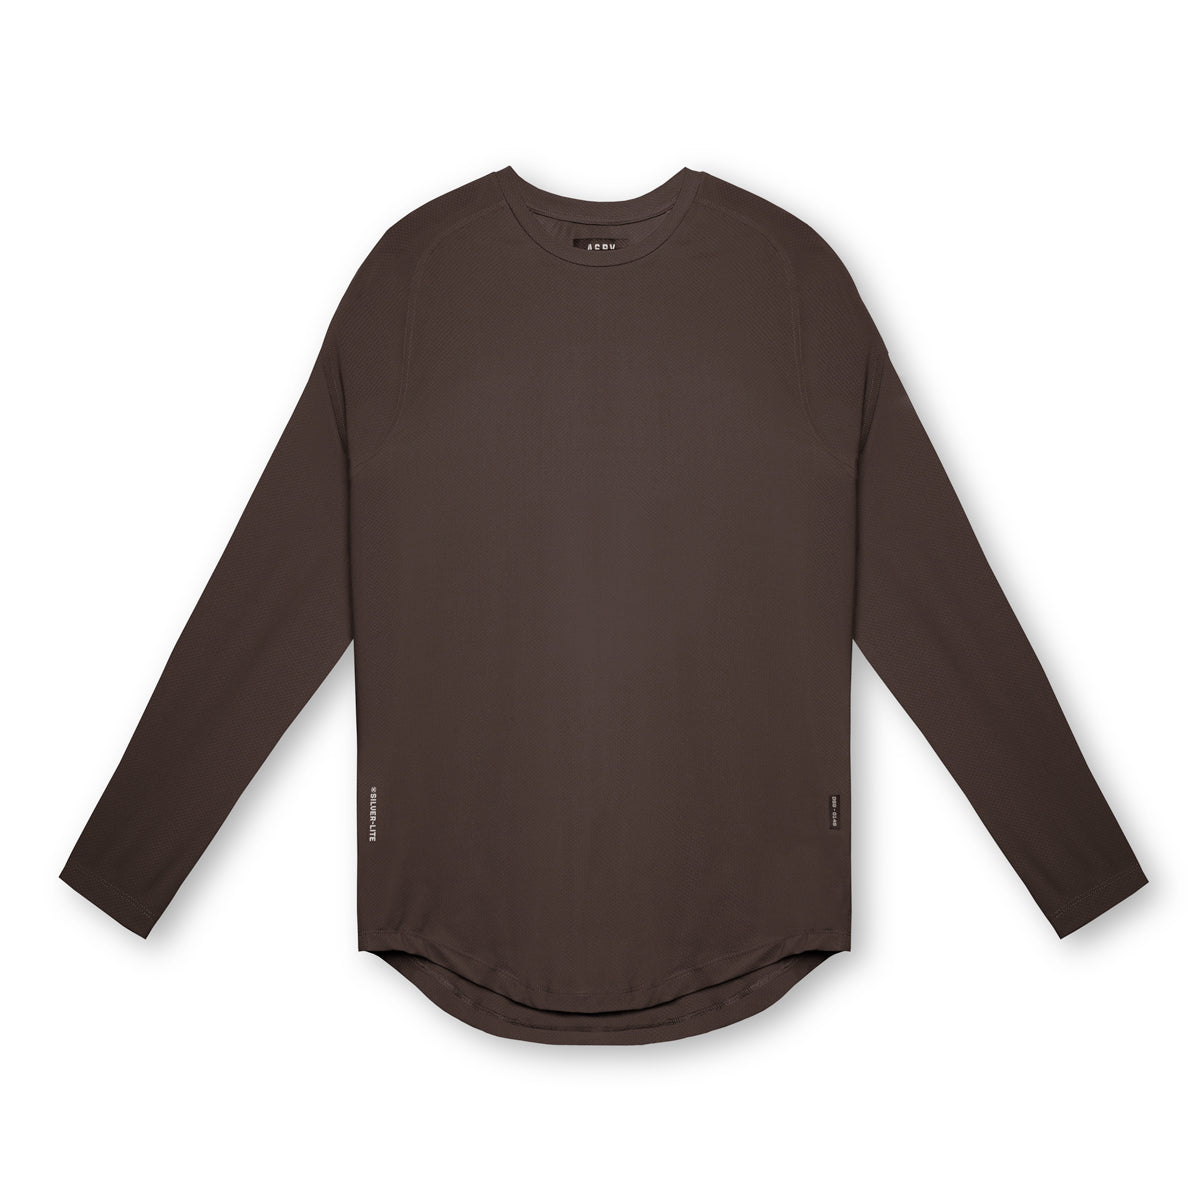 0149. Silver-Lite® Long Sleeve - Dark Earth